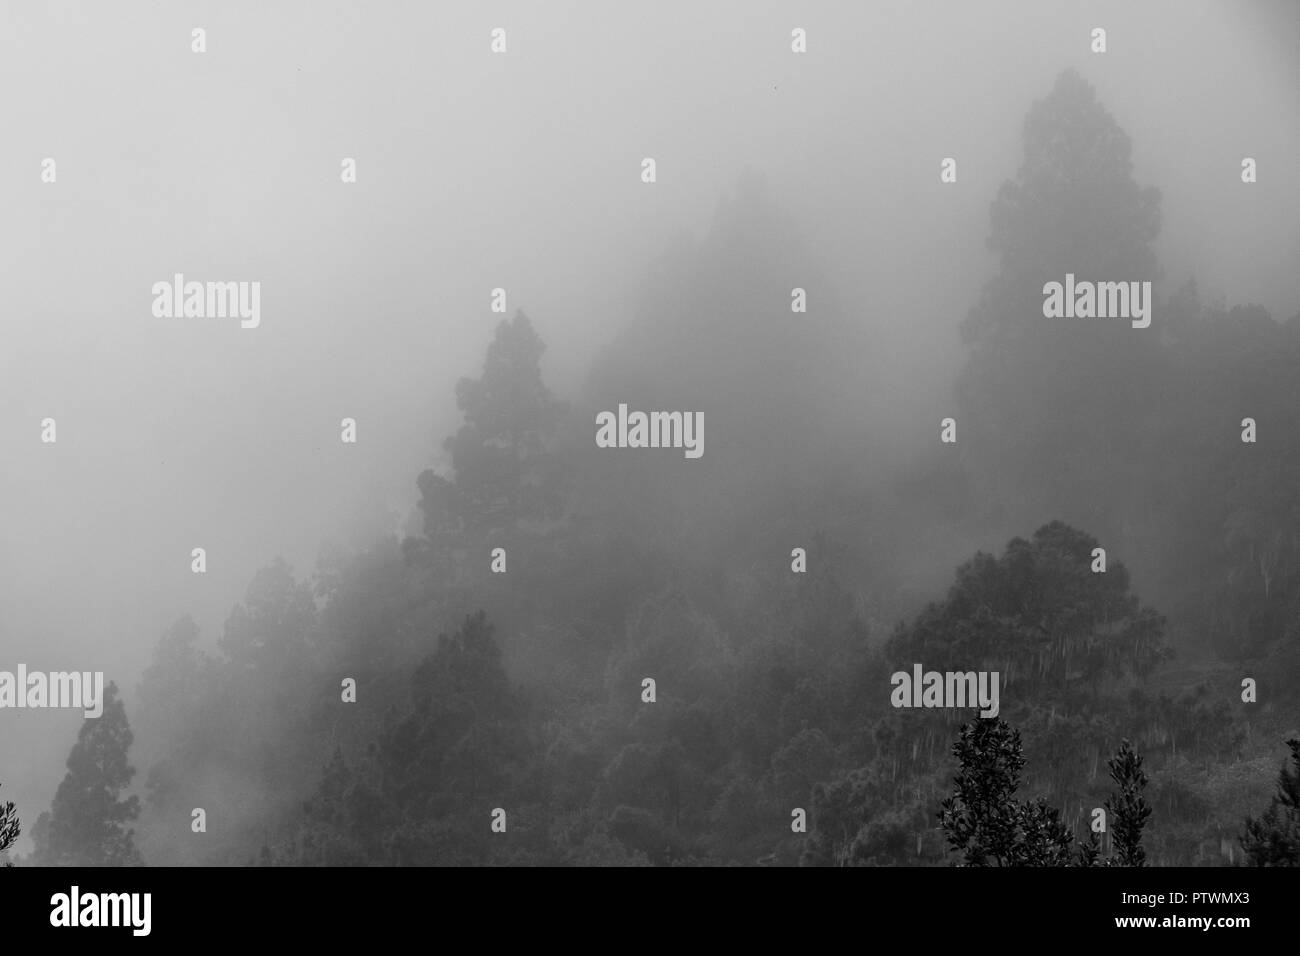 trees in clouds, foggy conifer forest in fog - Stock Image